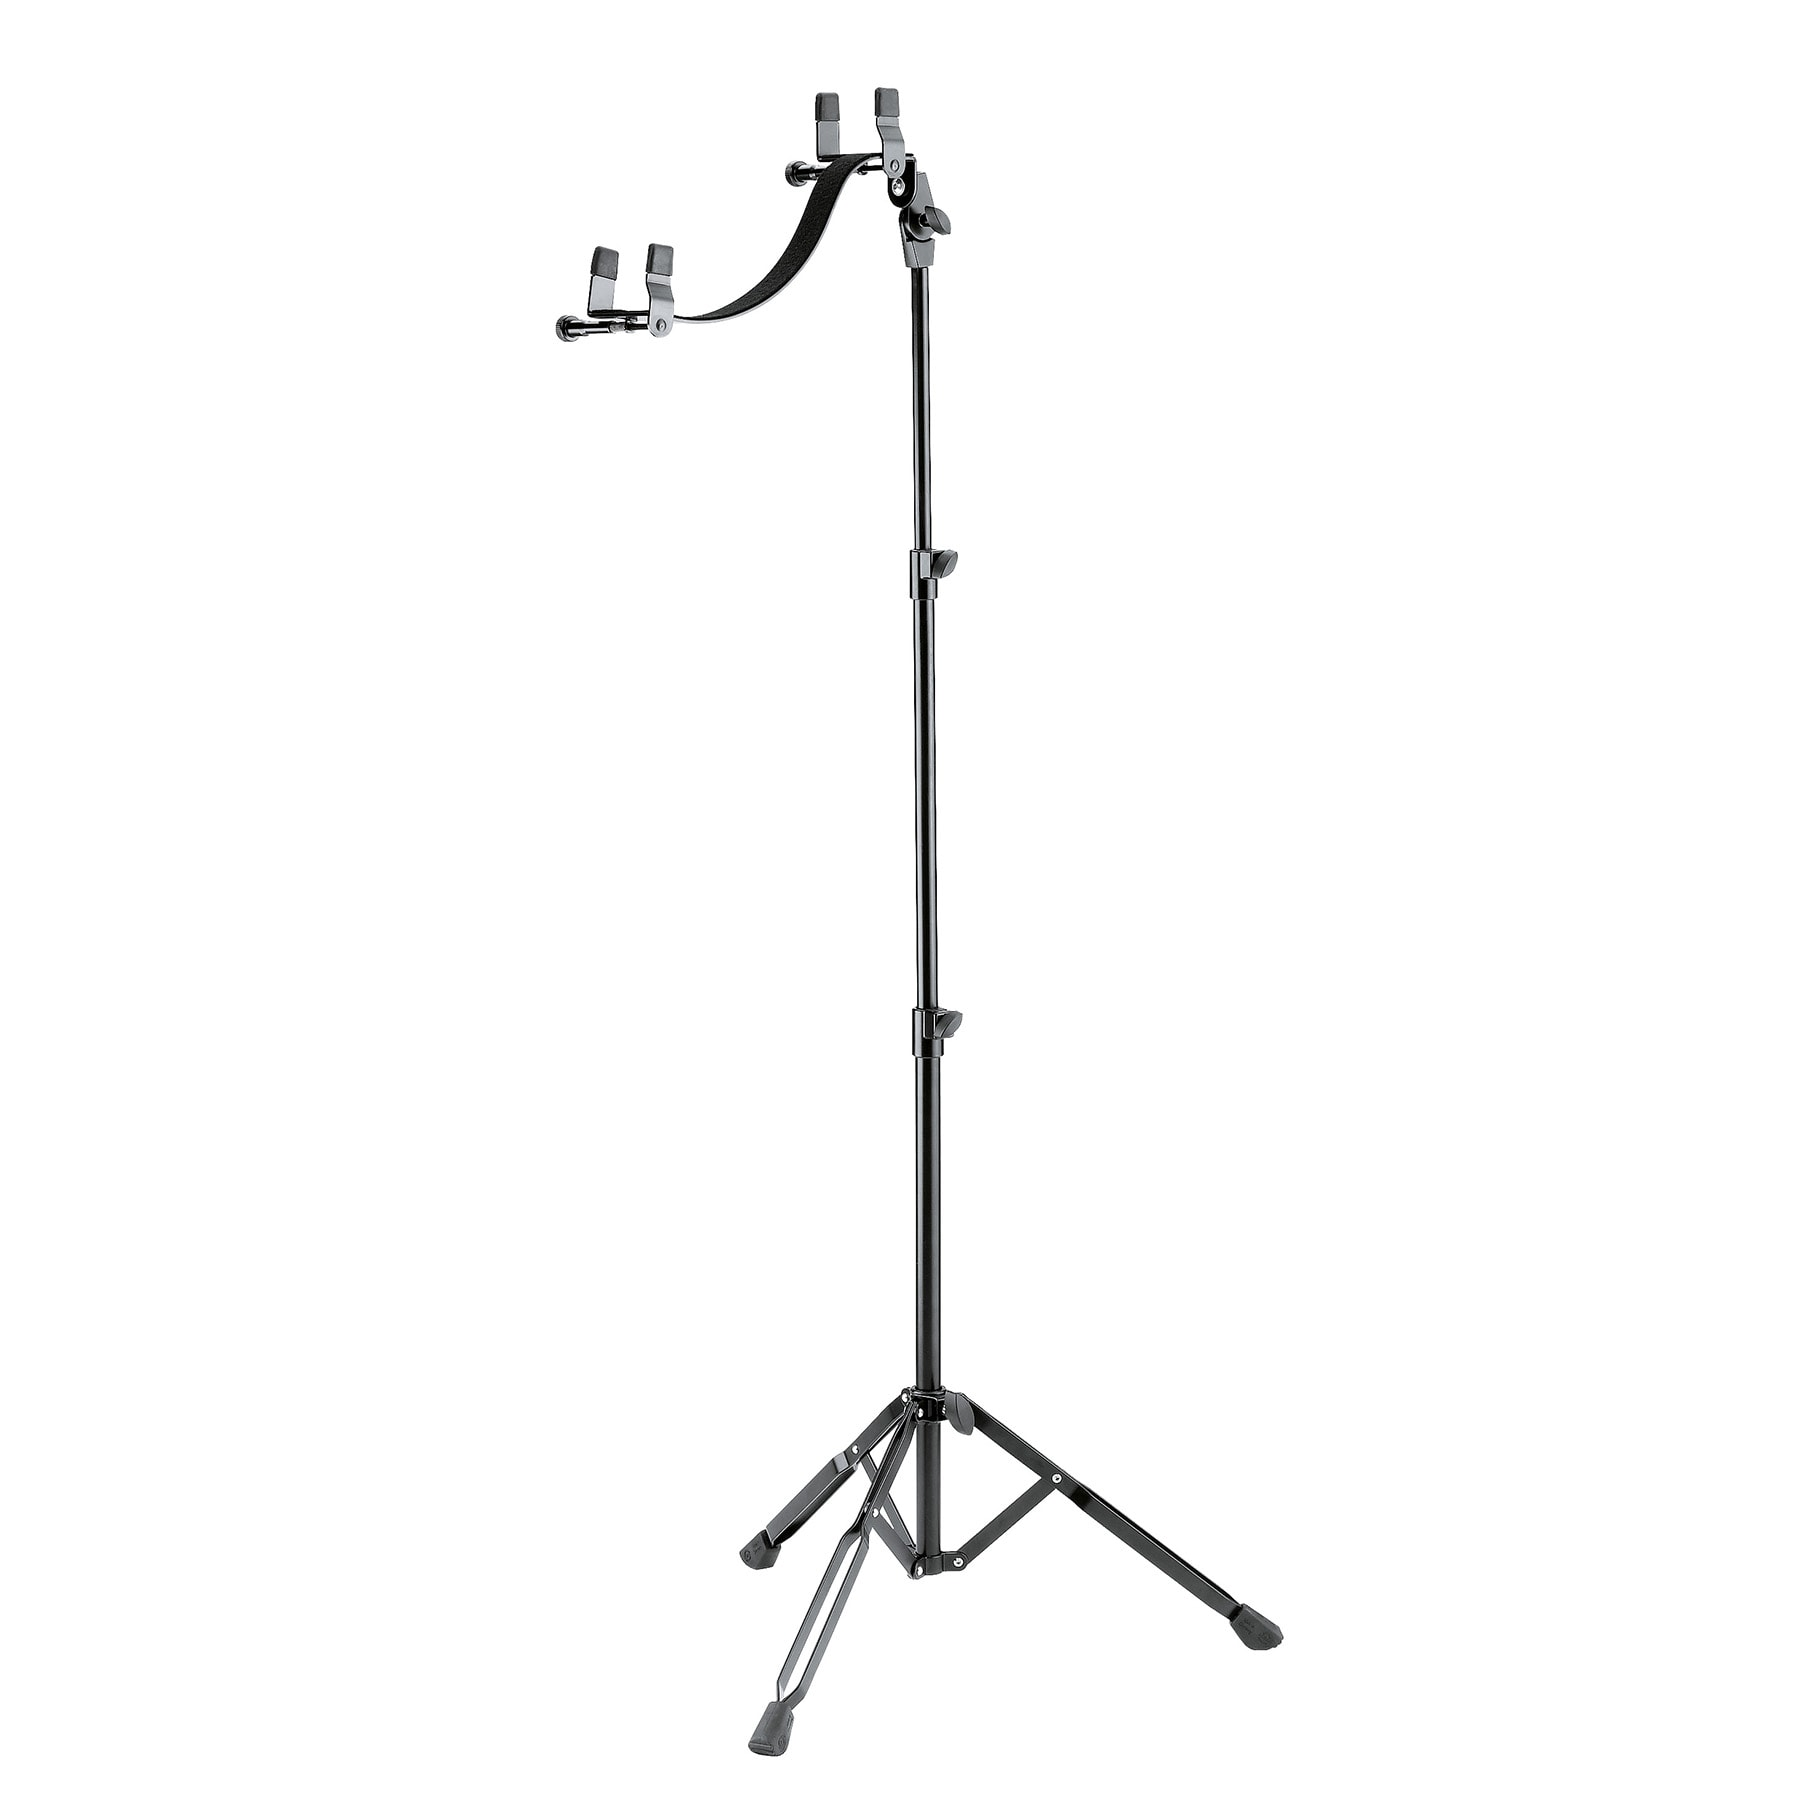 KM14761 - Guitar performer stand